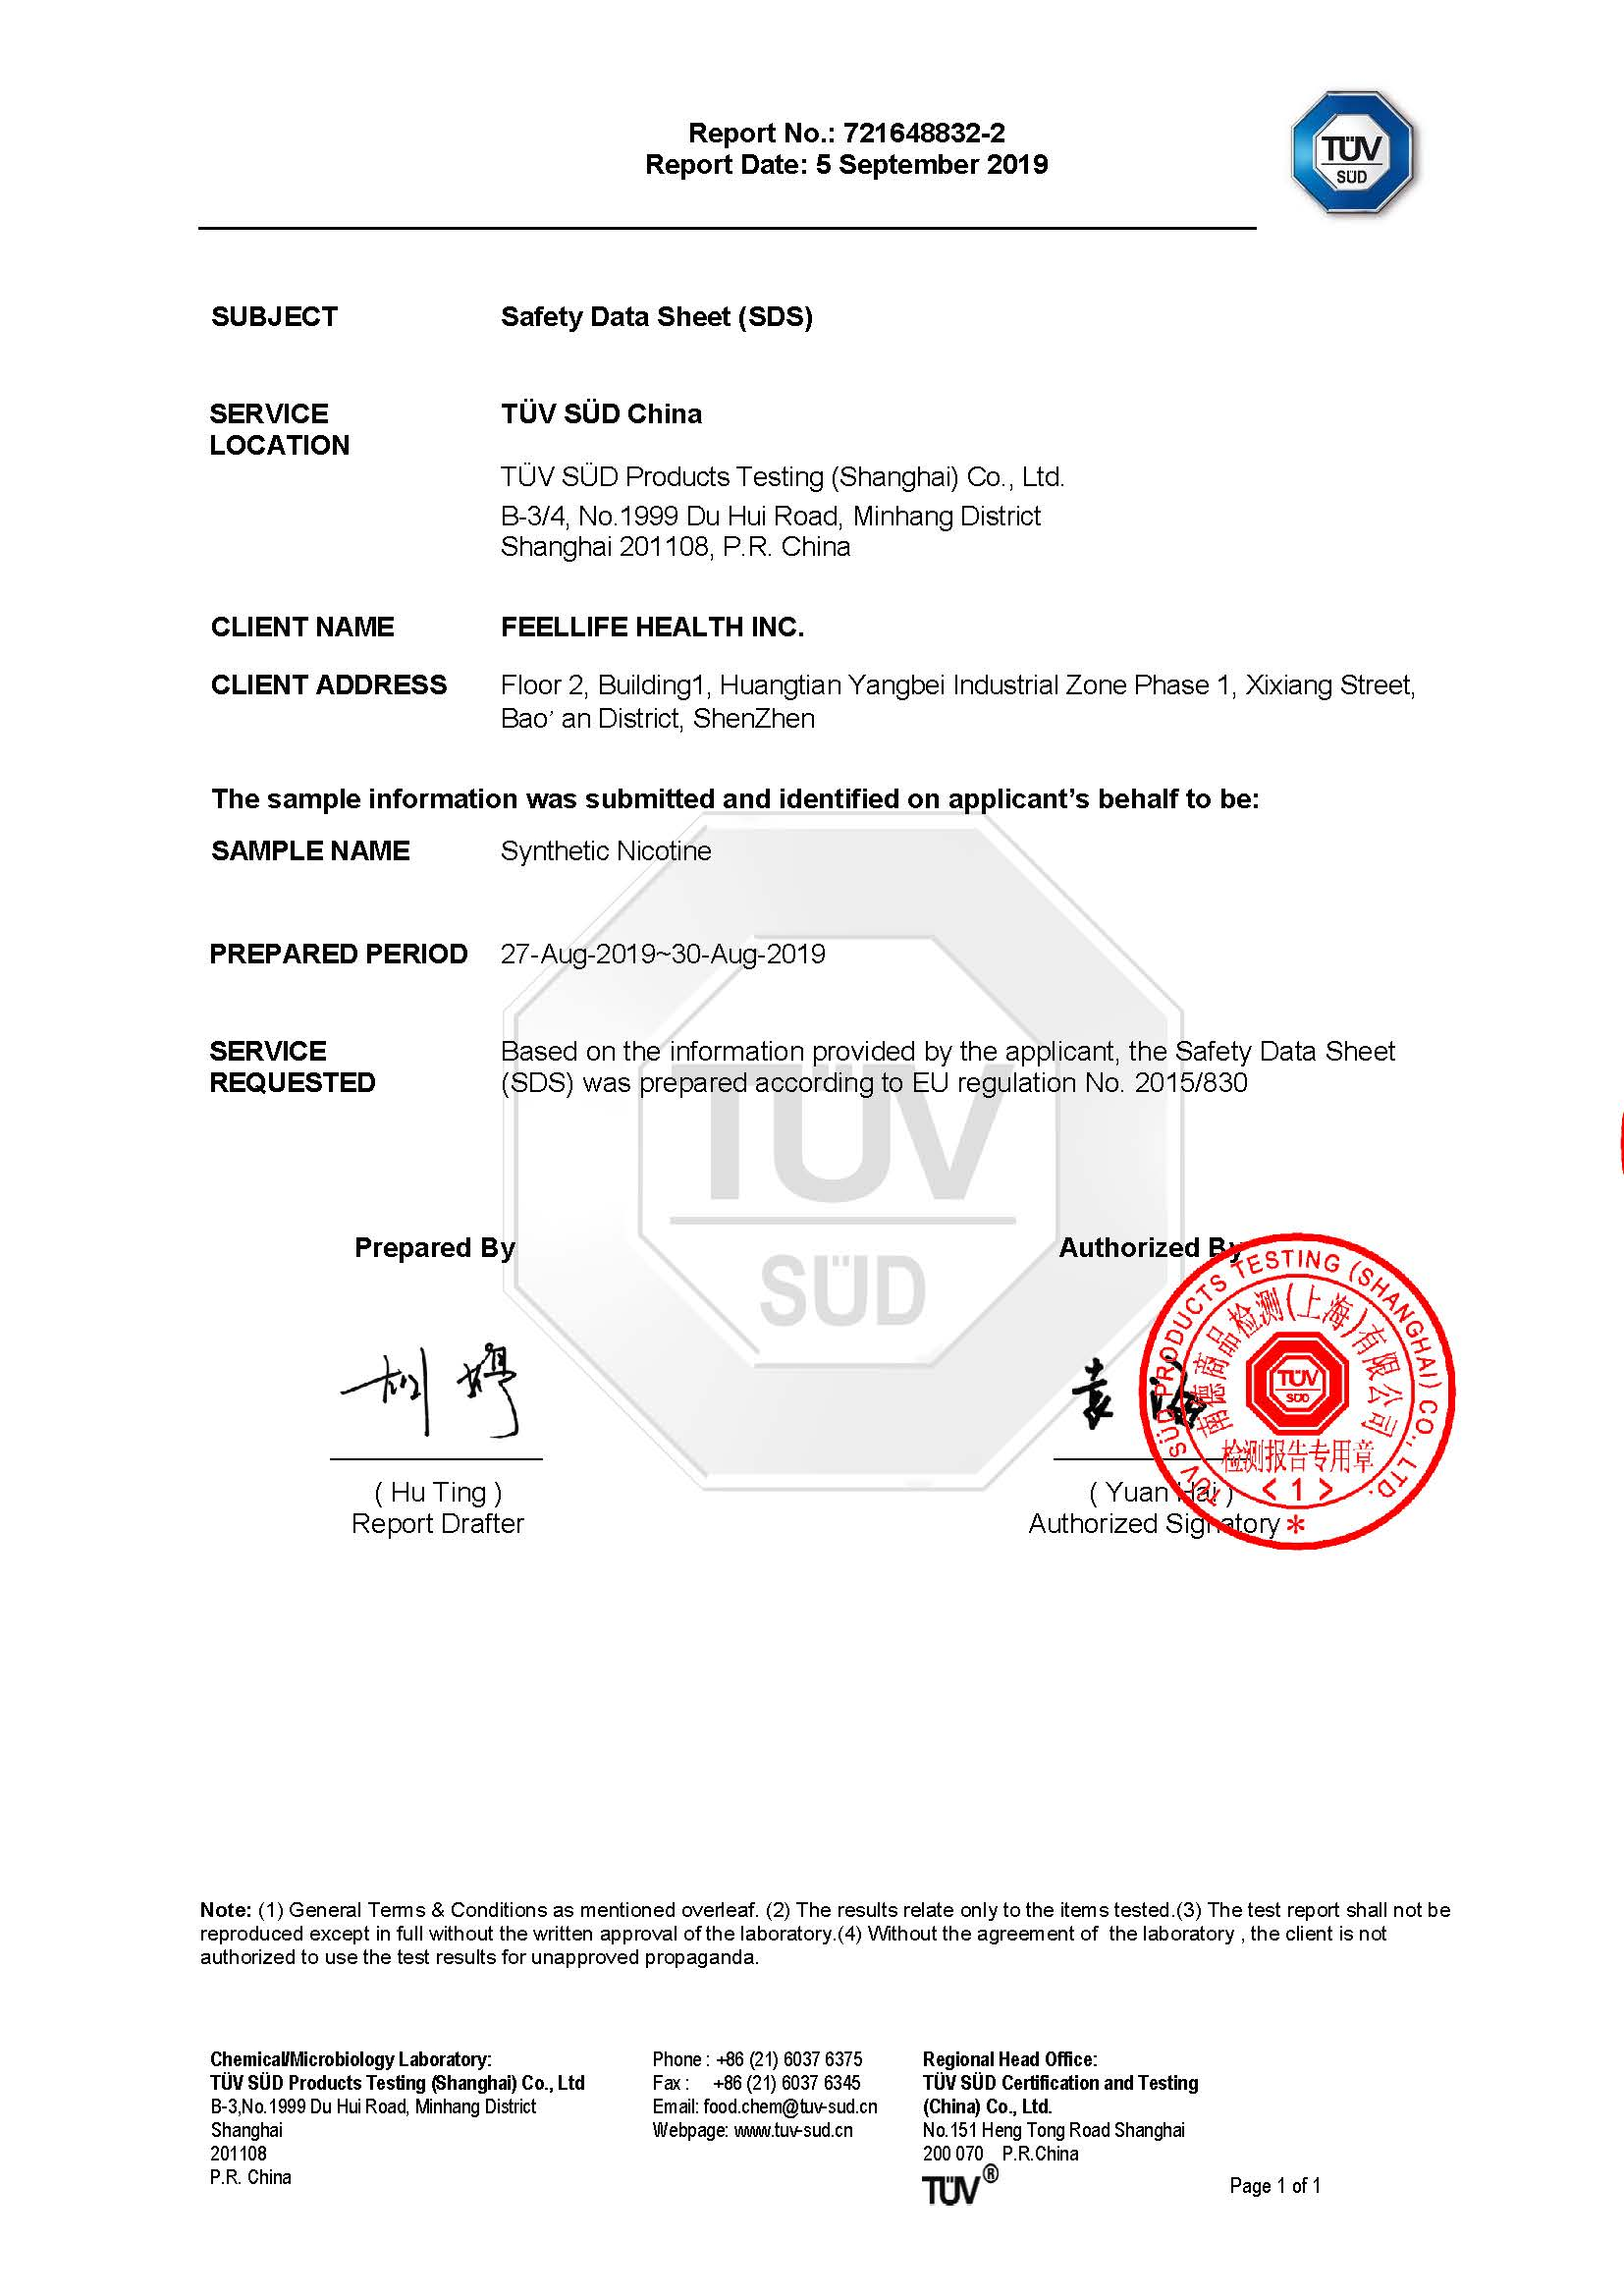 Synthetic nicotine SDS certificate